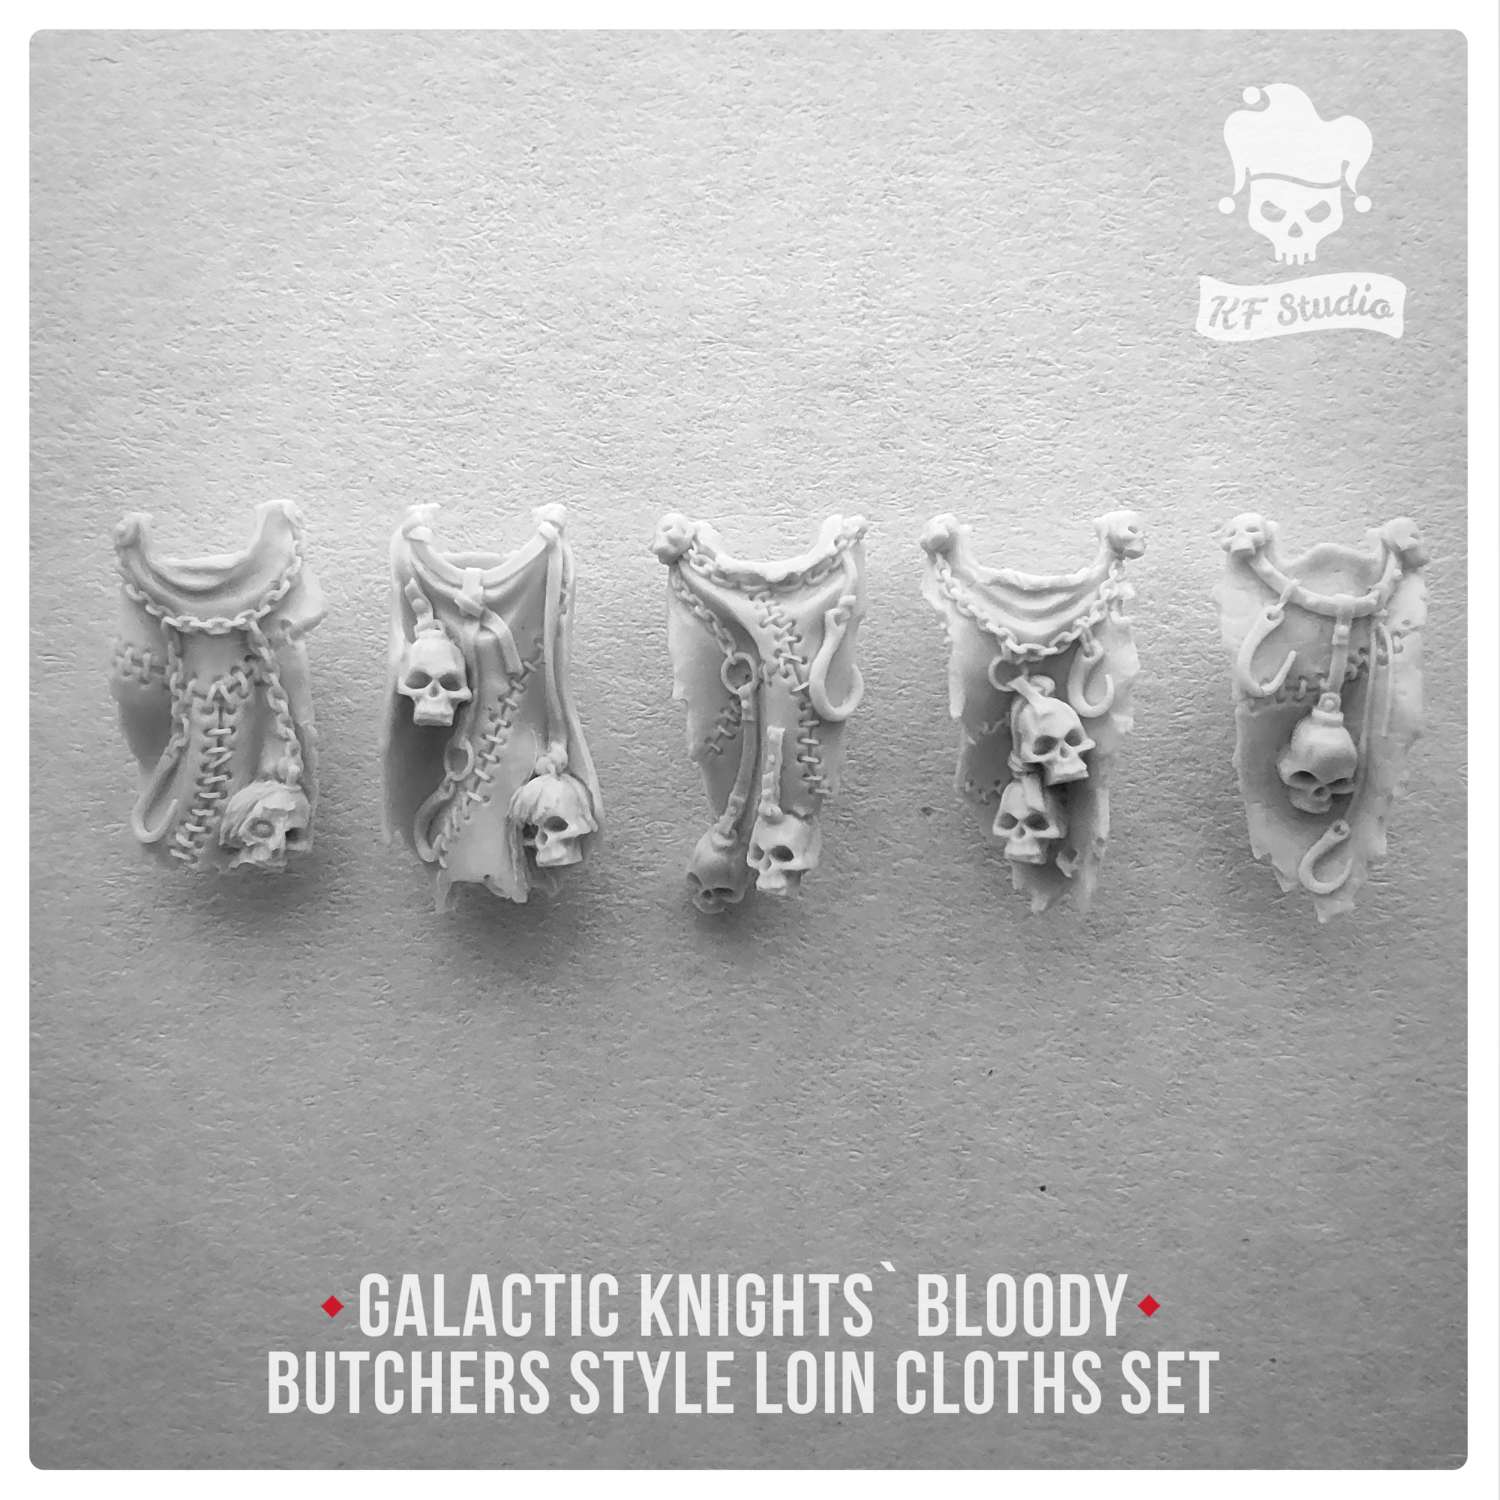 Galactic Knights Bloody Butcher Style Loin cloths by KFStudio